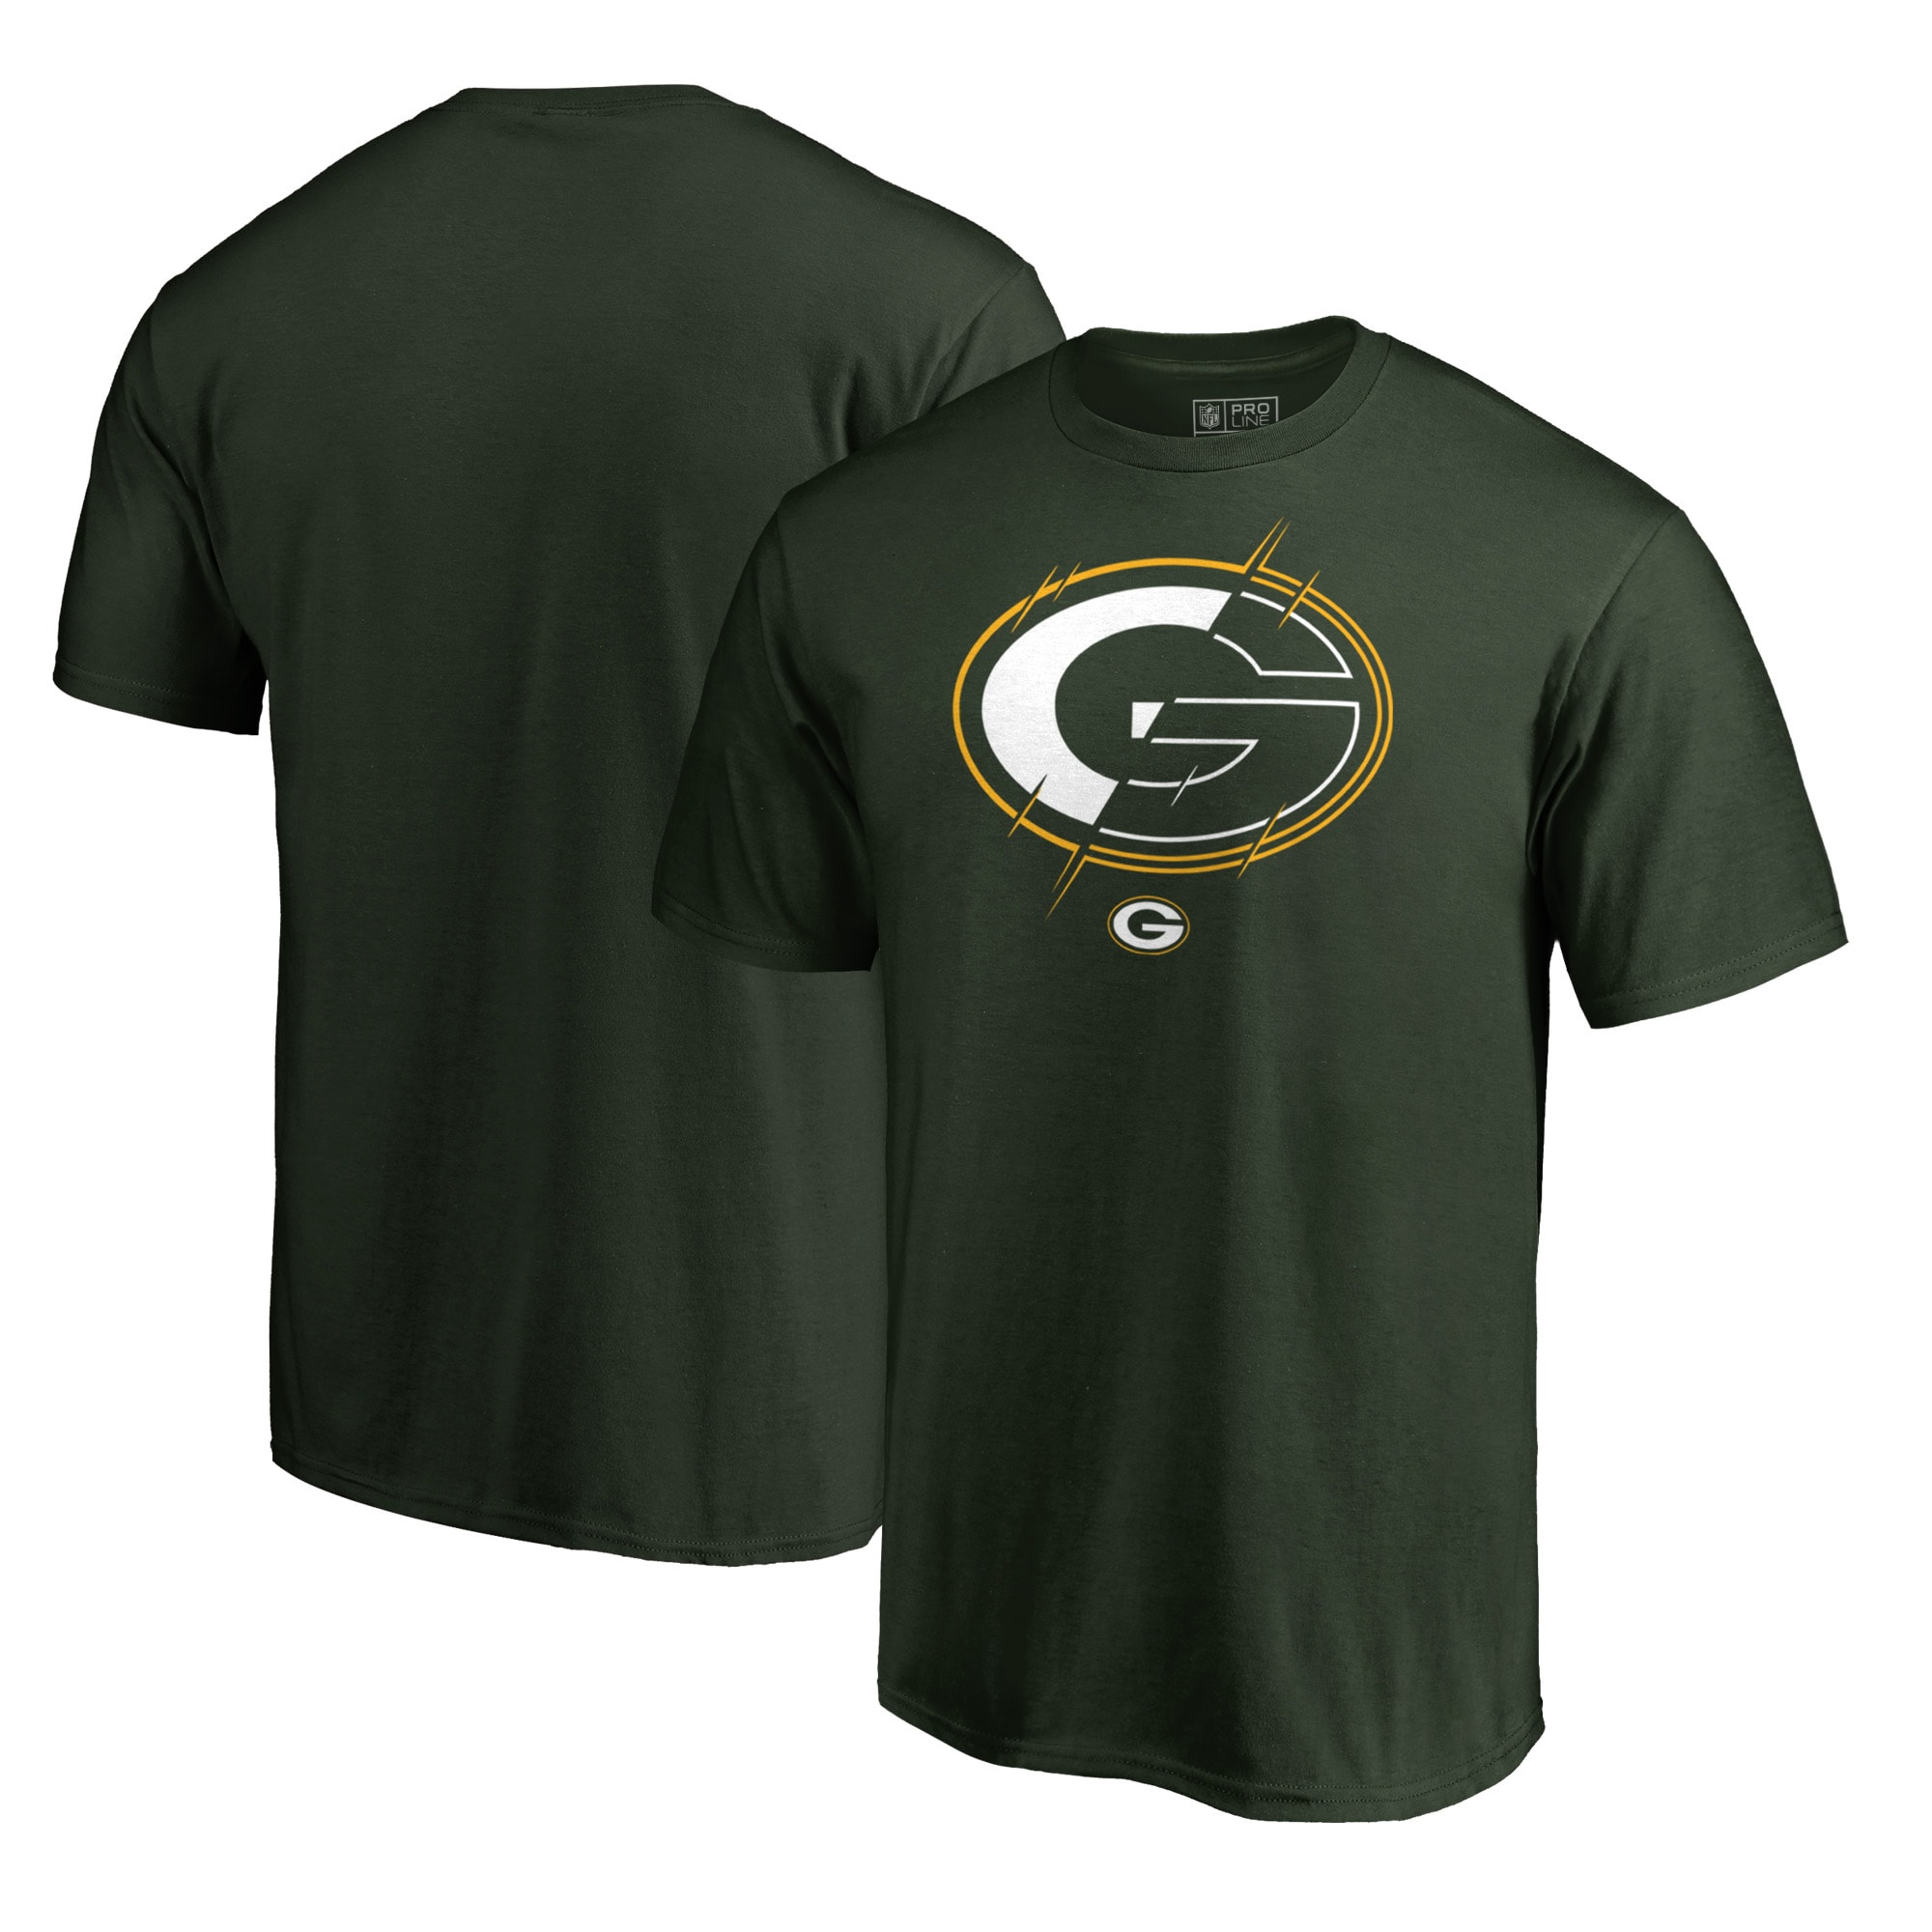 Green Bay Packers NFL Pro Line by Fanatics Branded X-Ray T-Shirt - Green